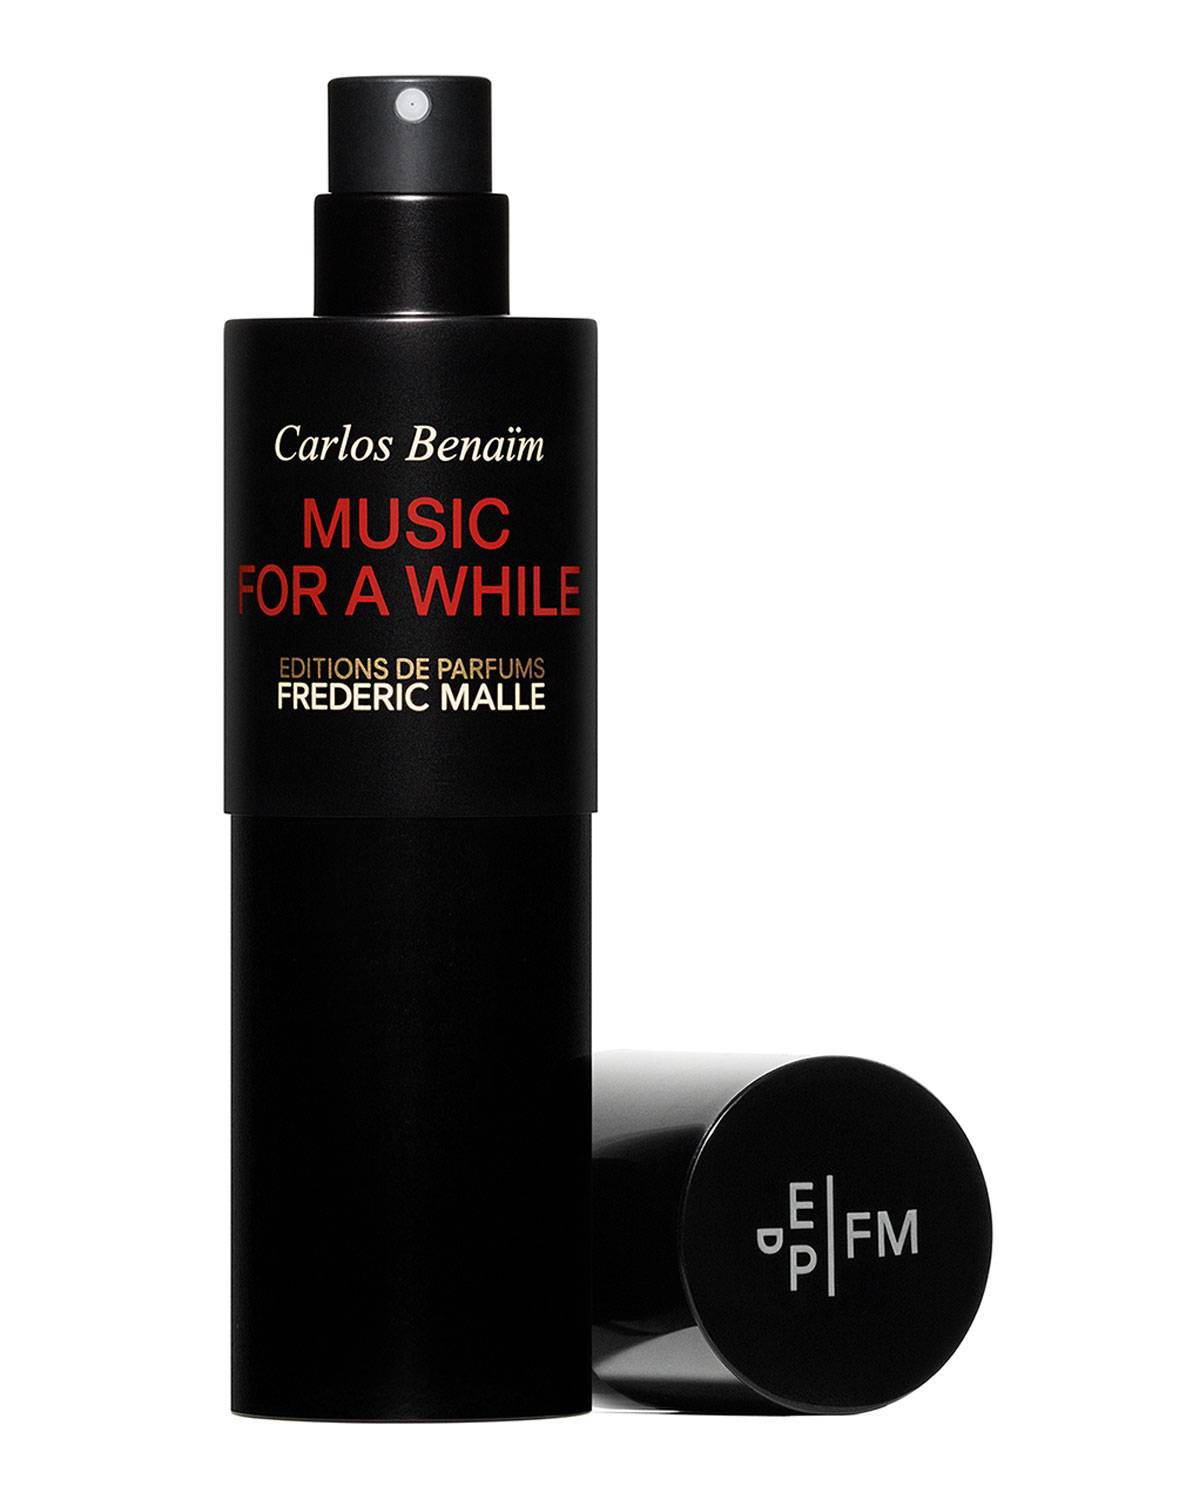 Frederic Malle 1.0 oz. Music For A While Perfume